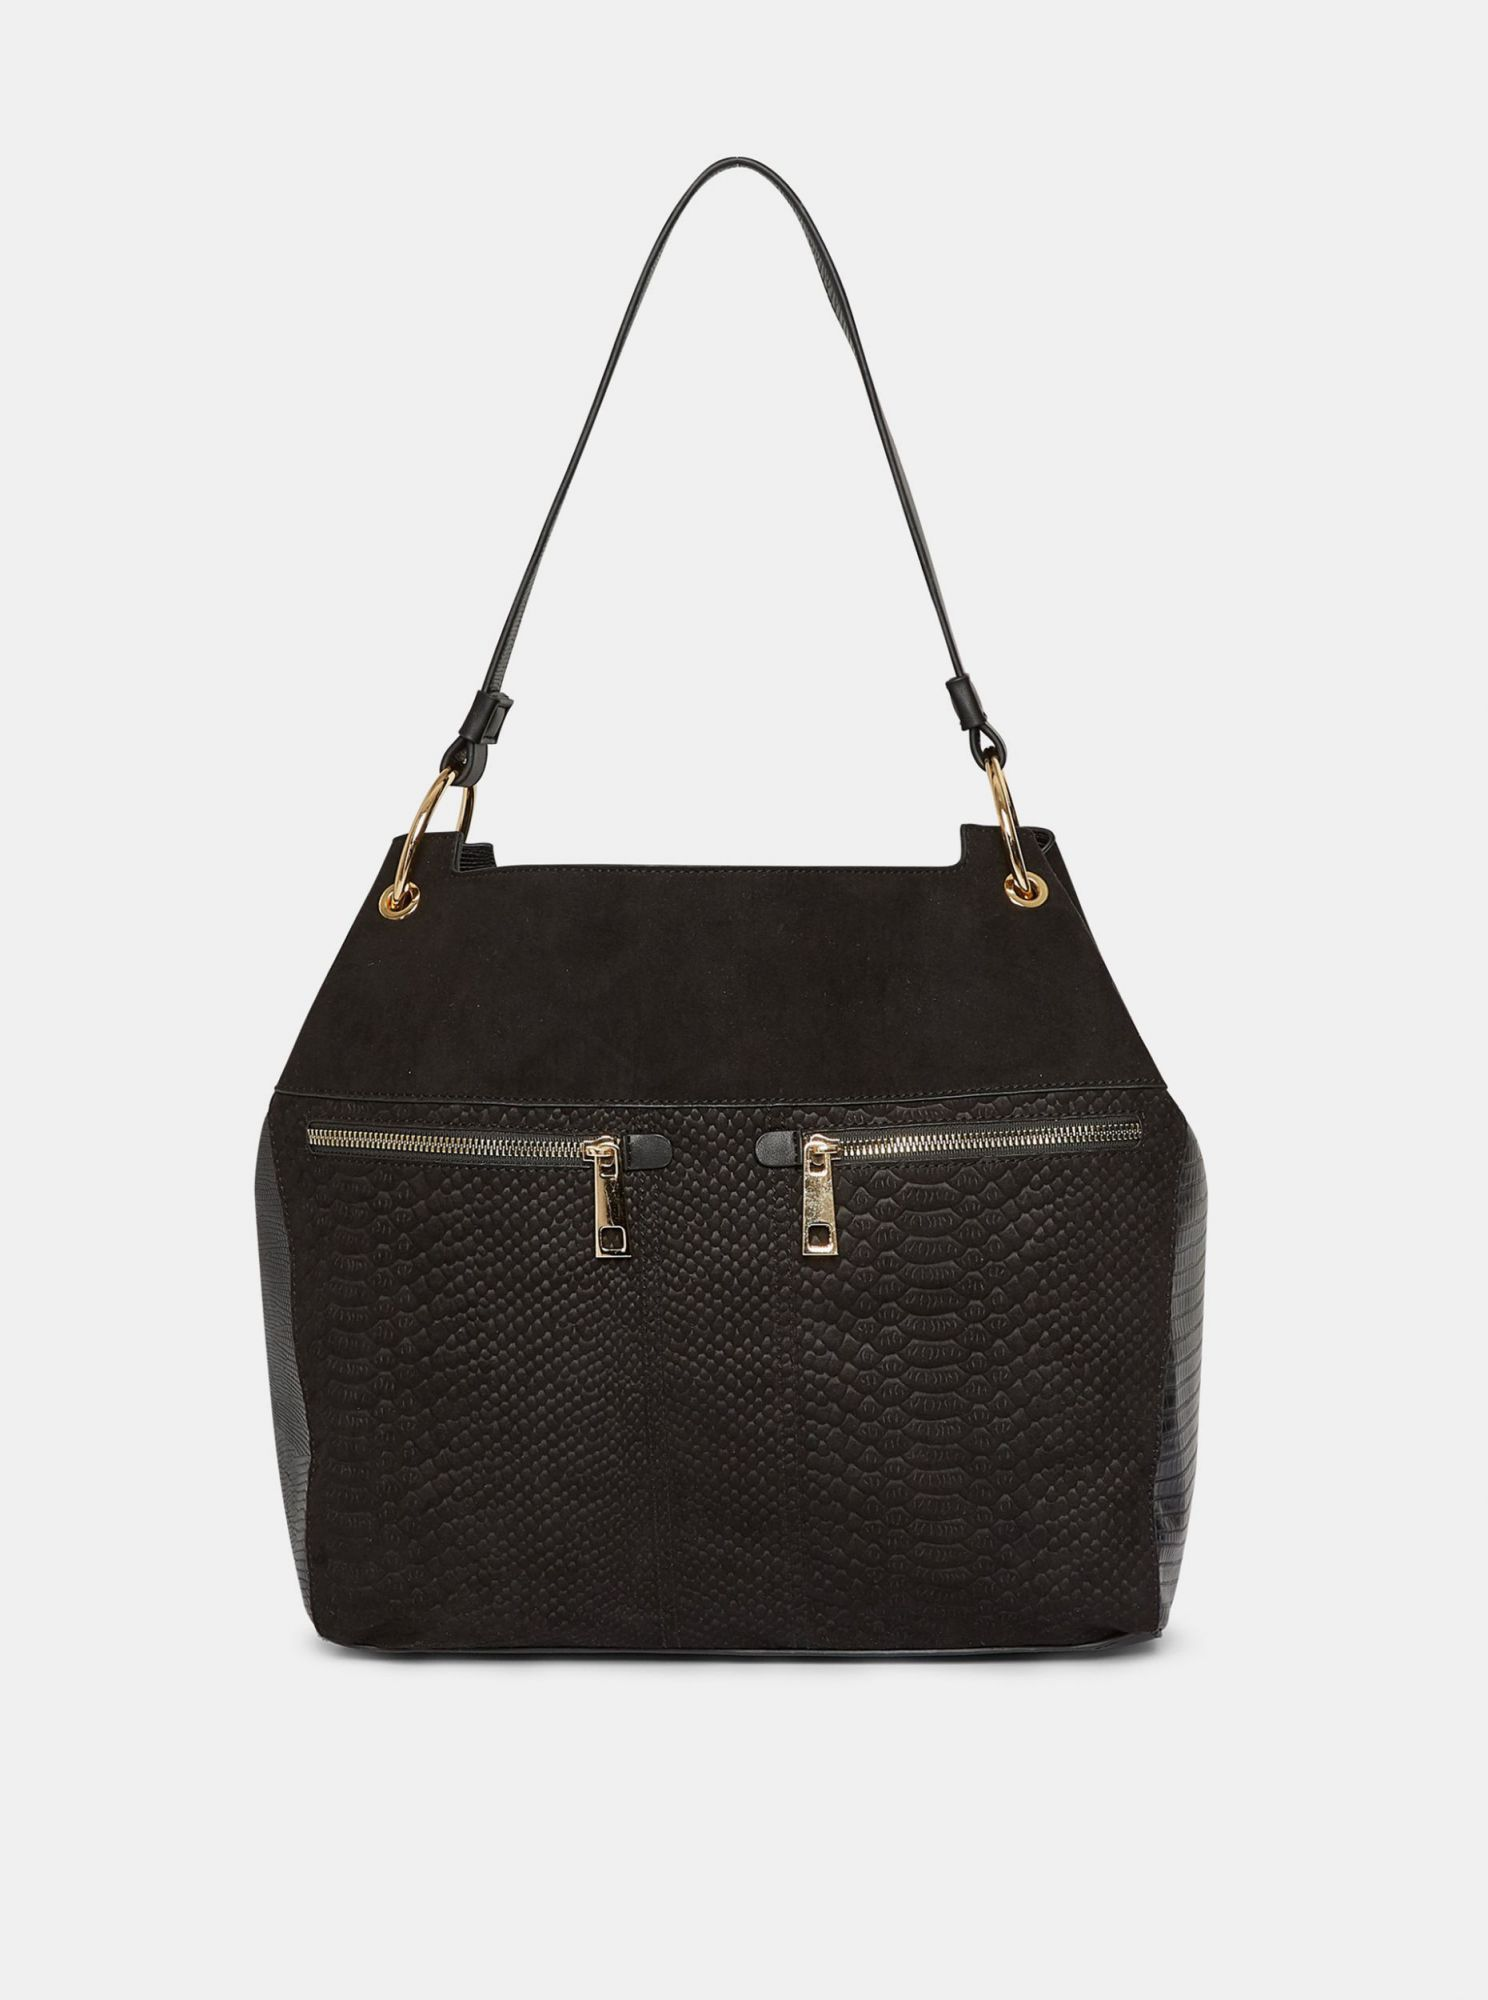 Black handbag in suede with a snake pattern by Dorothy Perkins